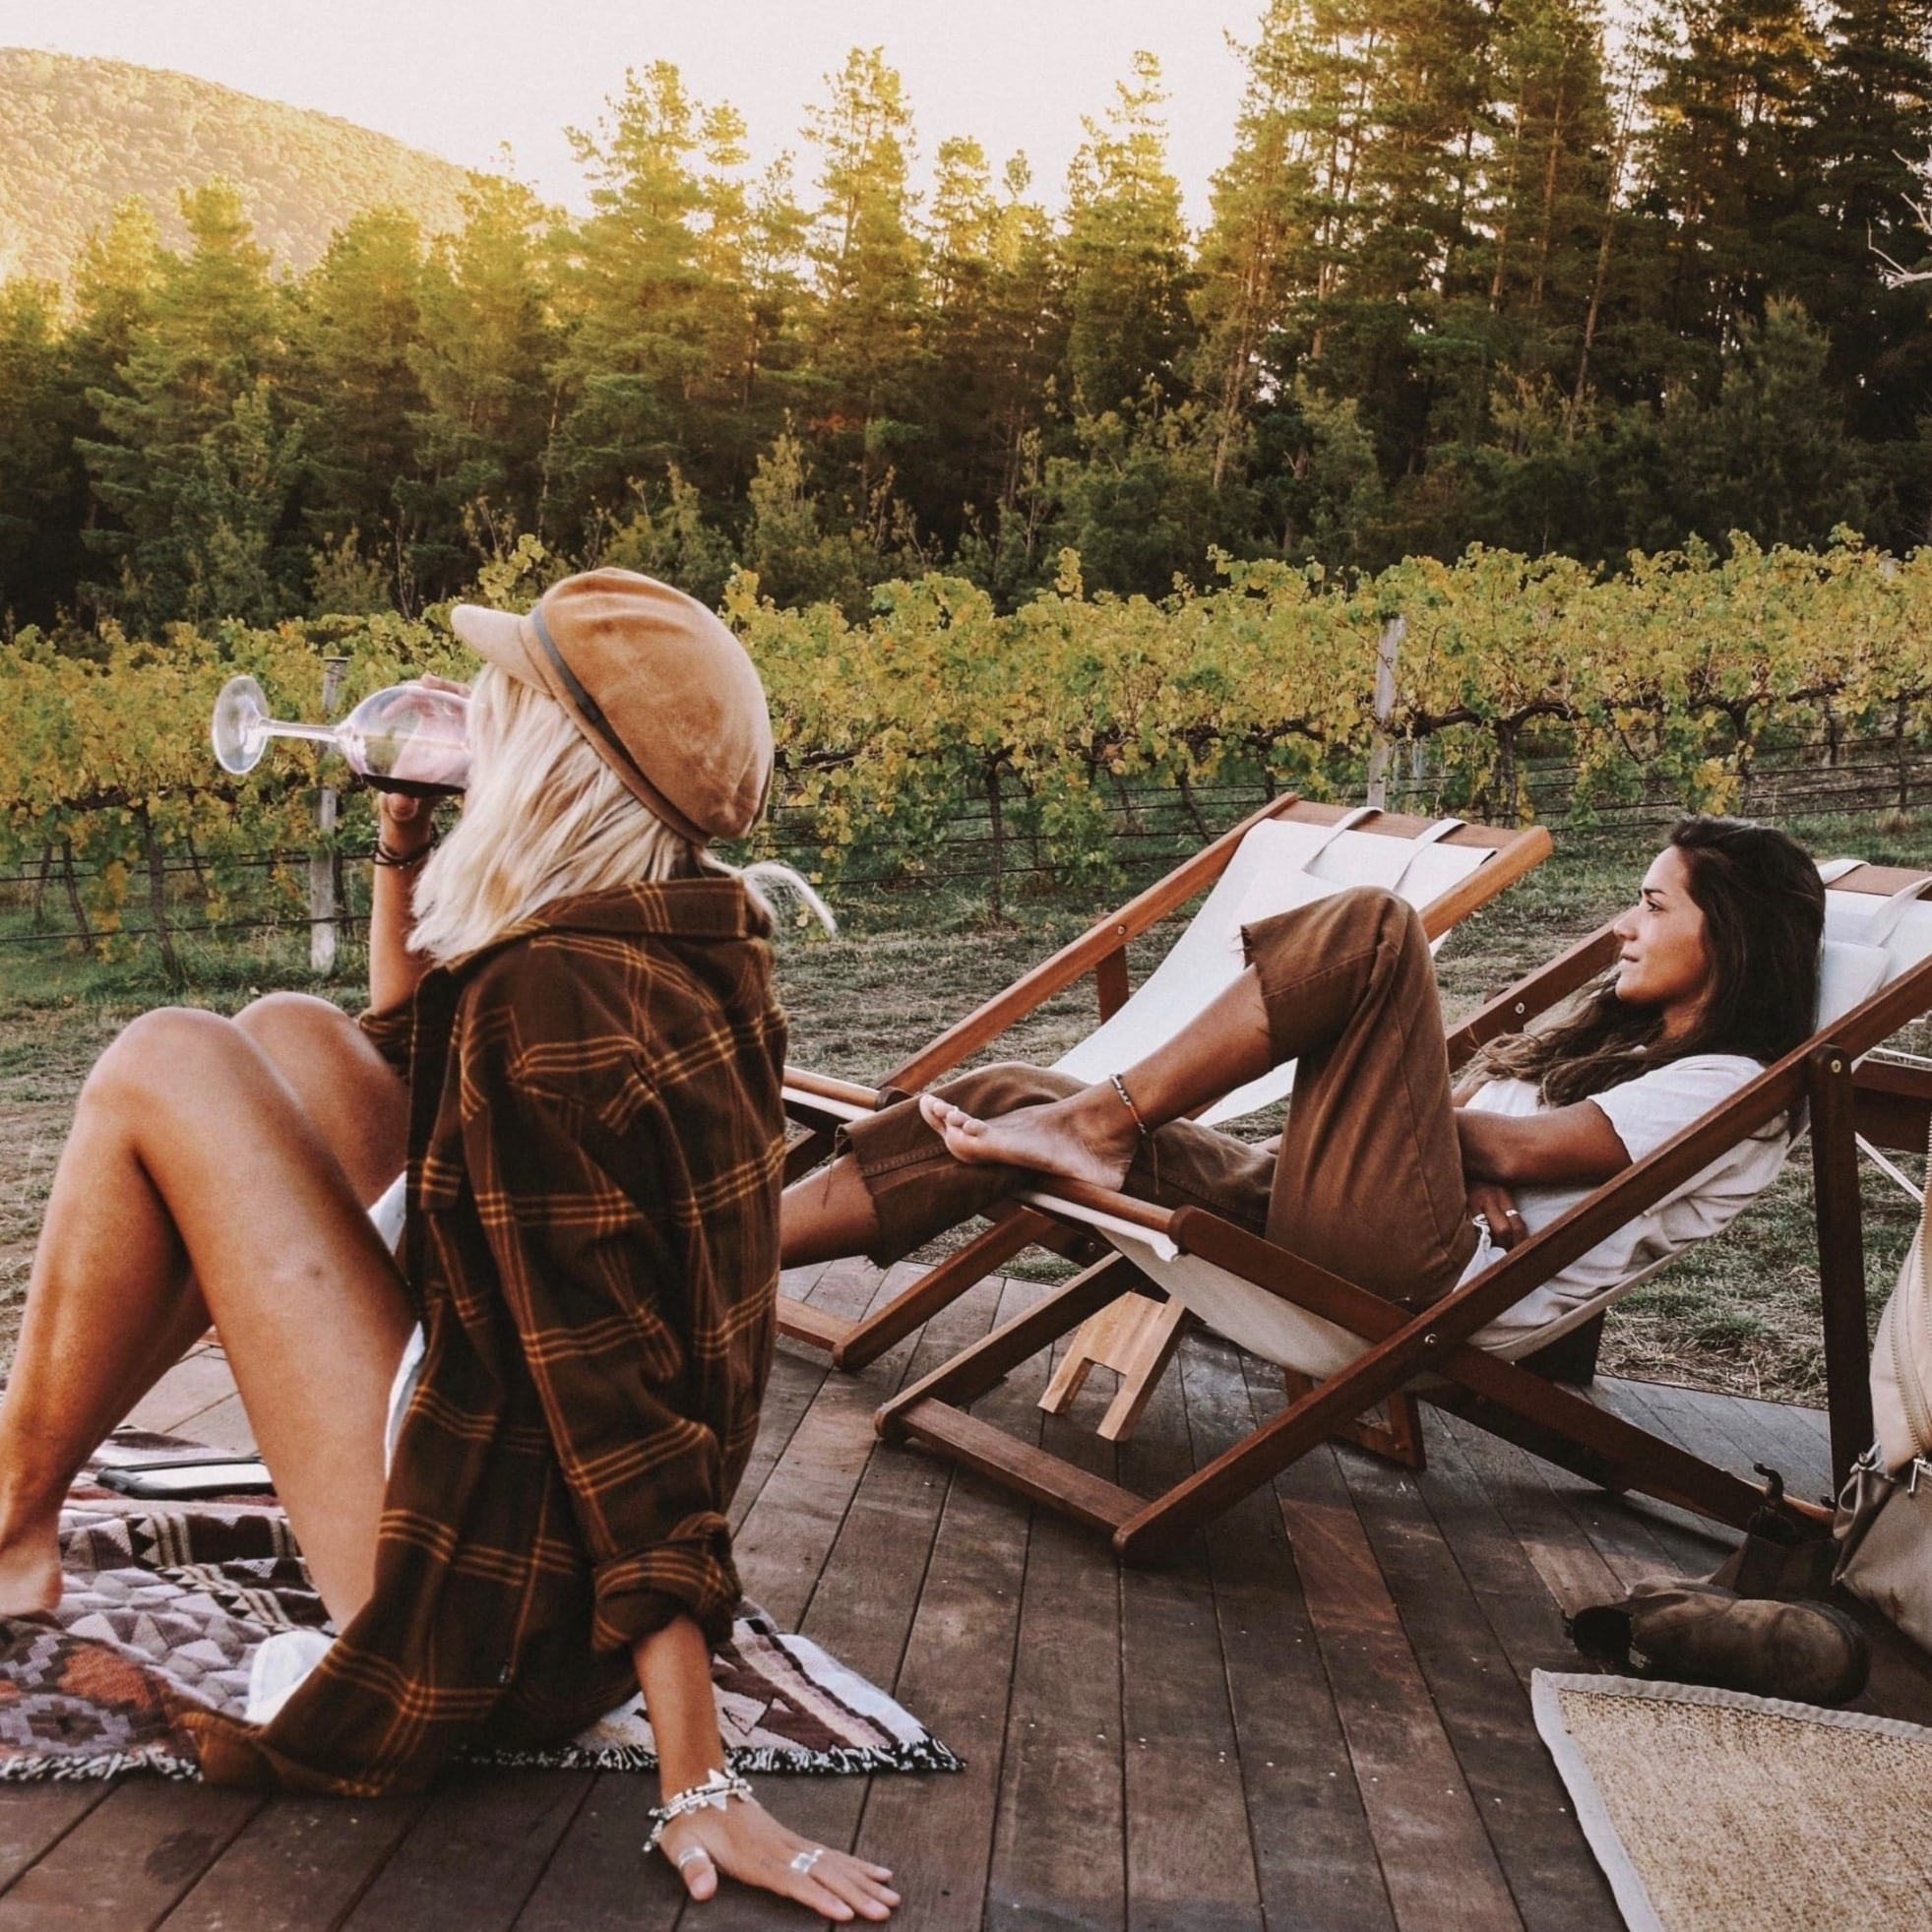 Women drink wine outside glamping tent at Naked Cubby Co near Canberra © Naked Cubby Co/Shan Bawden